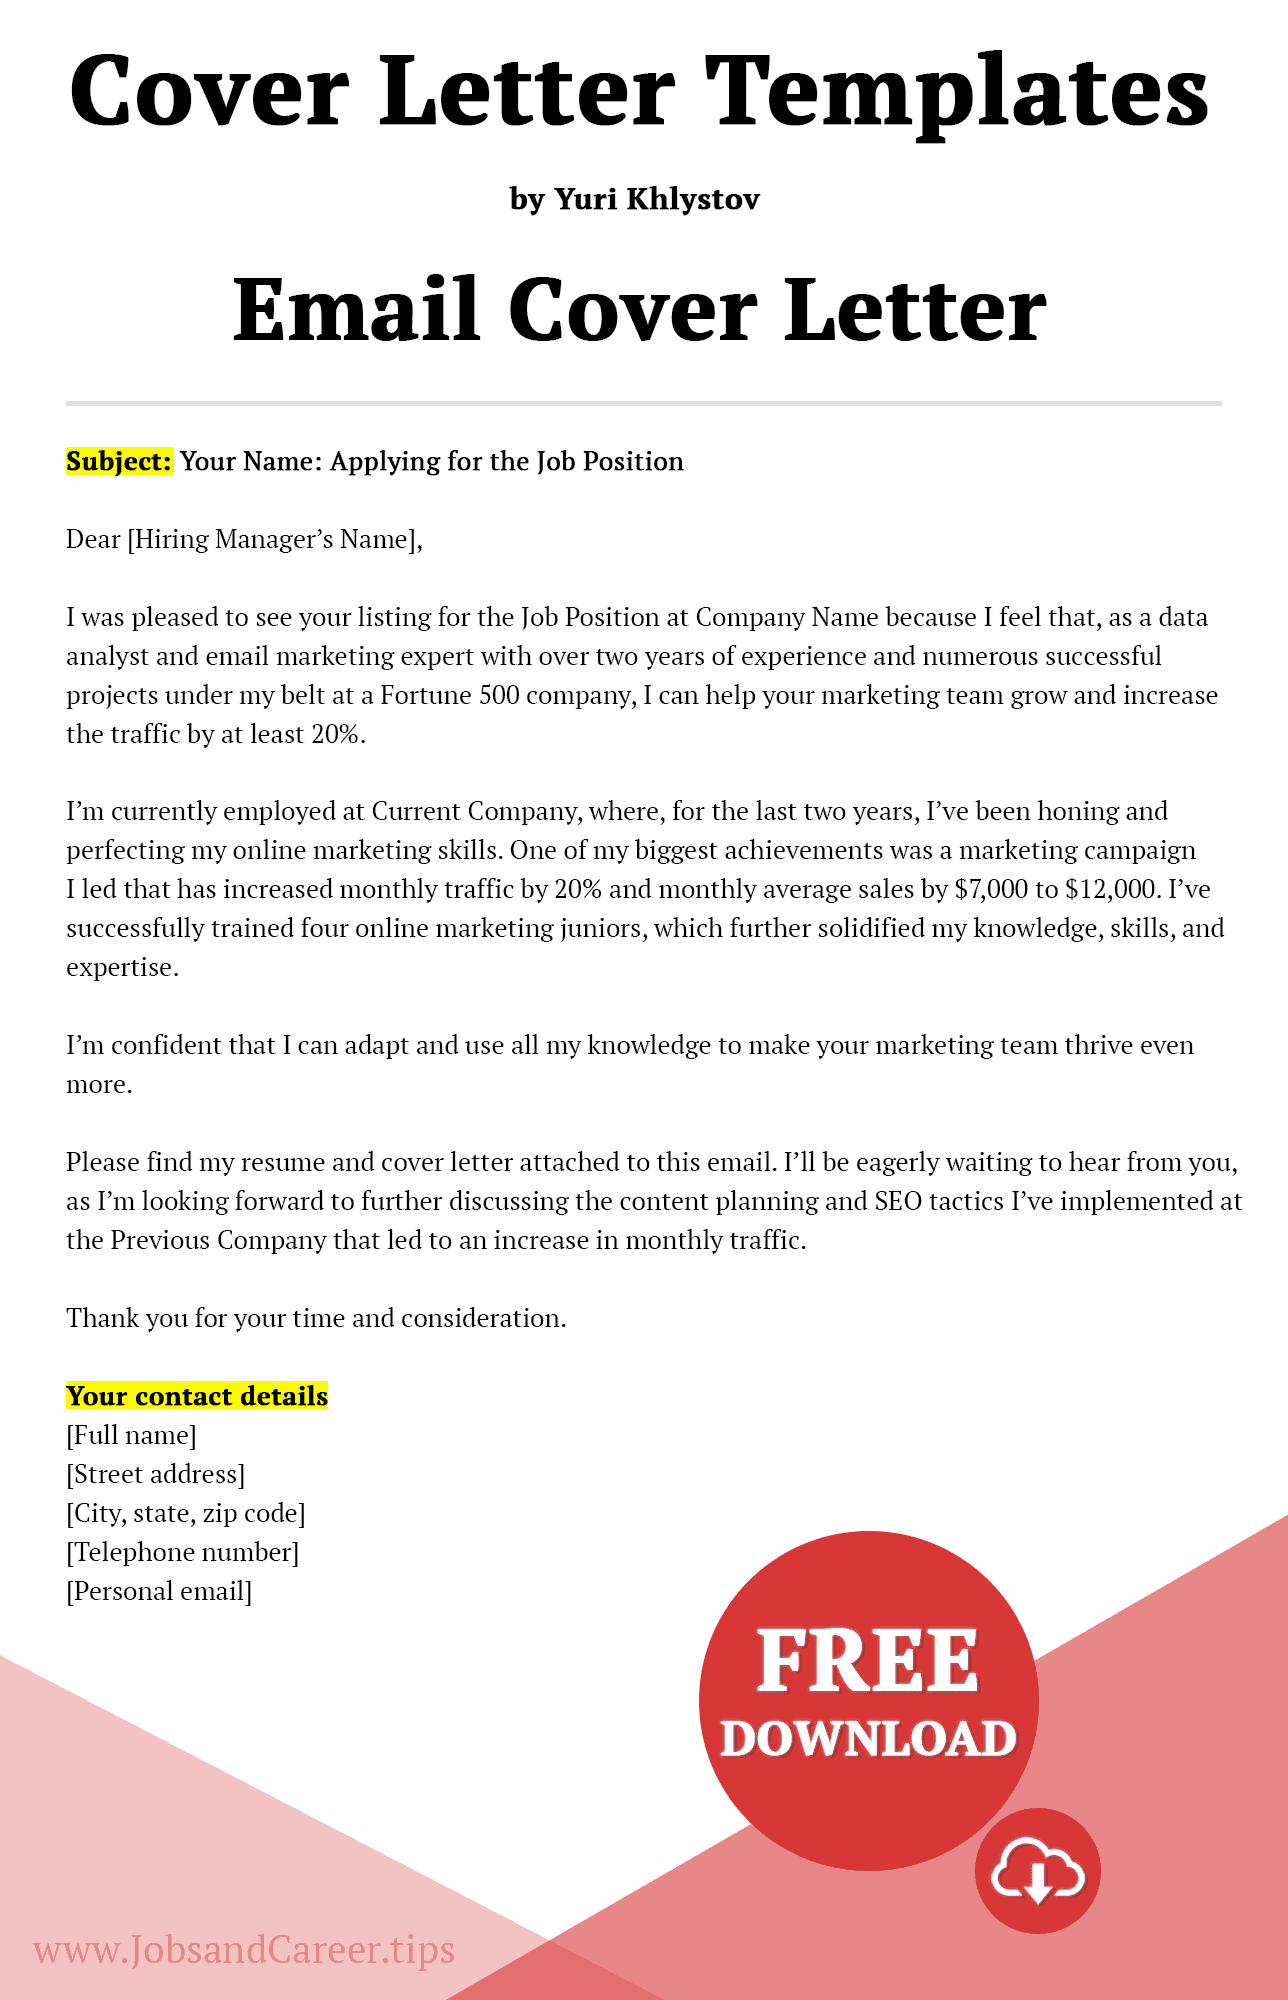 Click to download email cover letter template